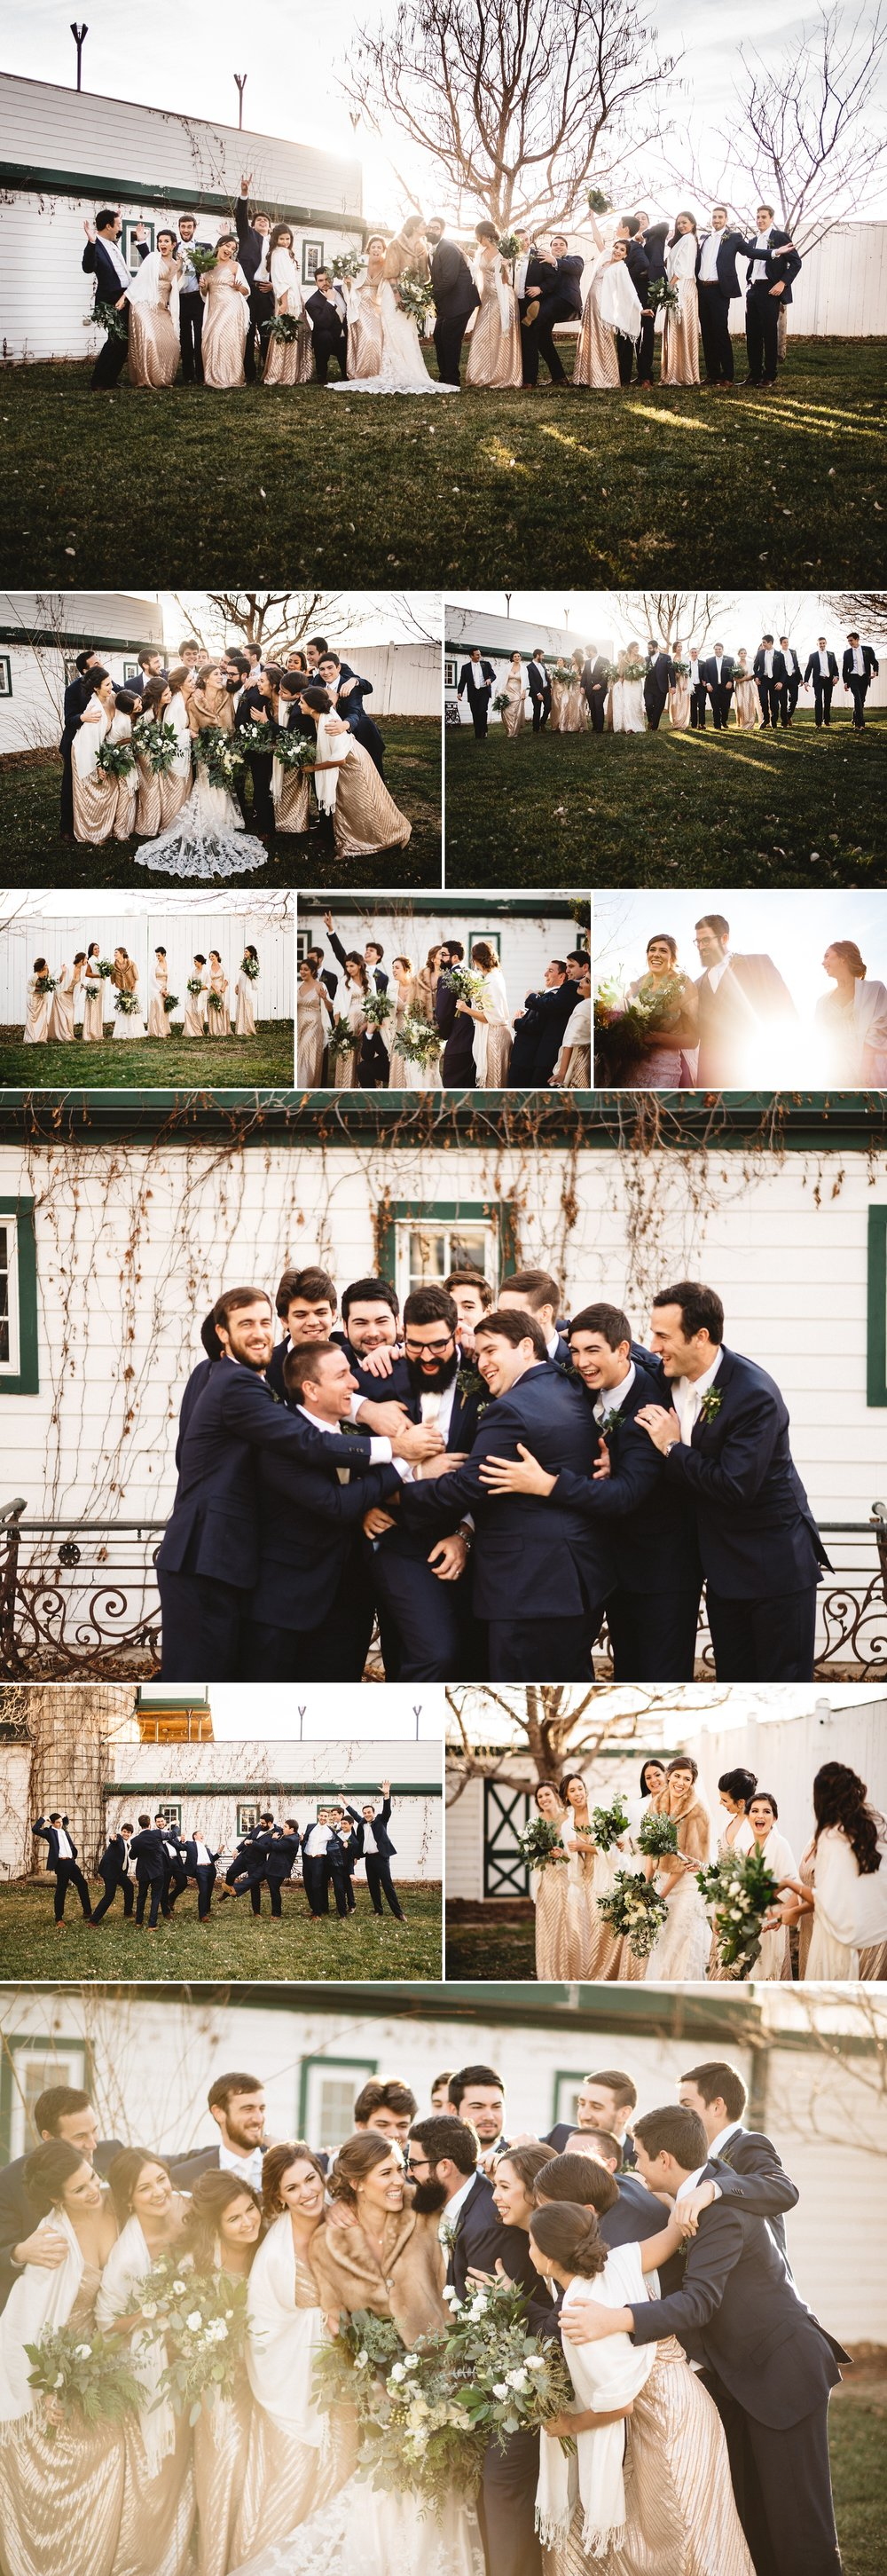 Fun photos with Sarah + Charlie's wedding party at the Lionsgate Event Center.